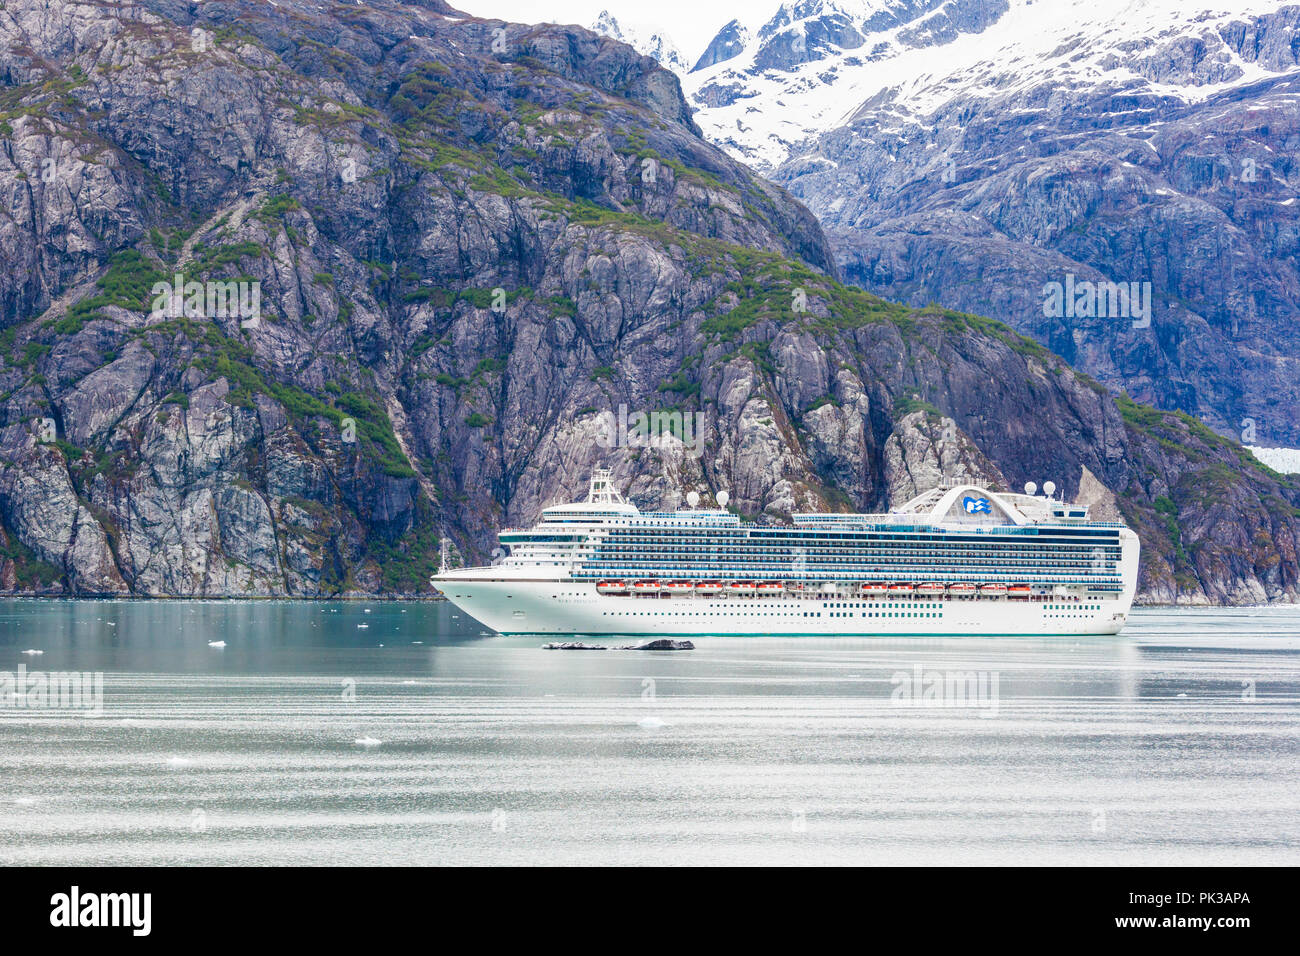 The Princess Cruises 'Ruby Princess' in the Tarr Inlet of Glacier Bay, Alaska, USA - Viewed from a cruise ship sailing the Inside Passage - Stock Image